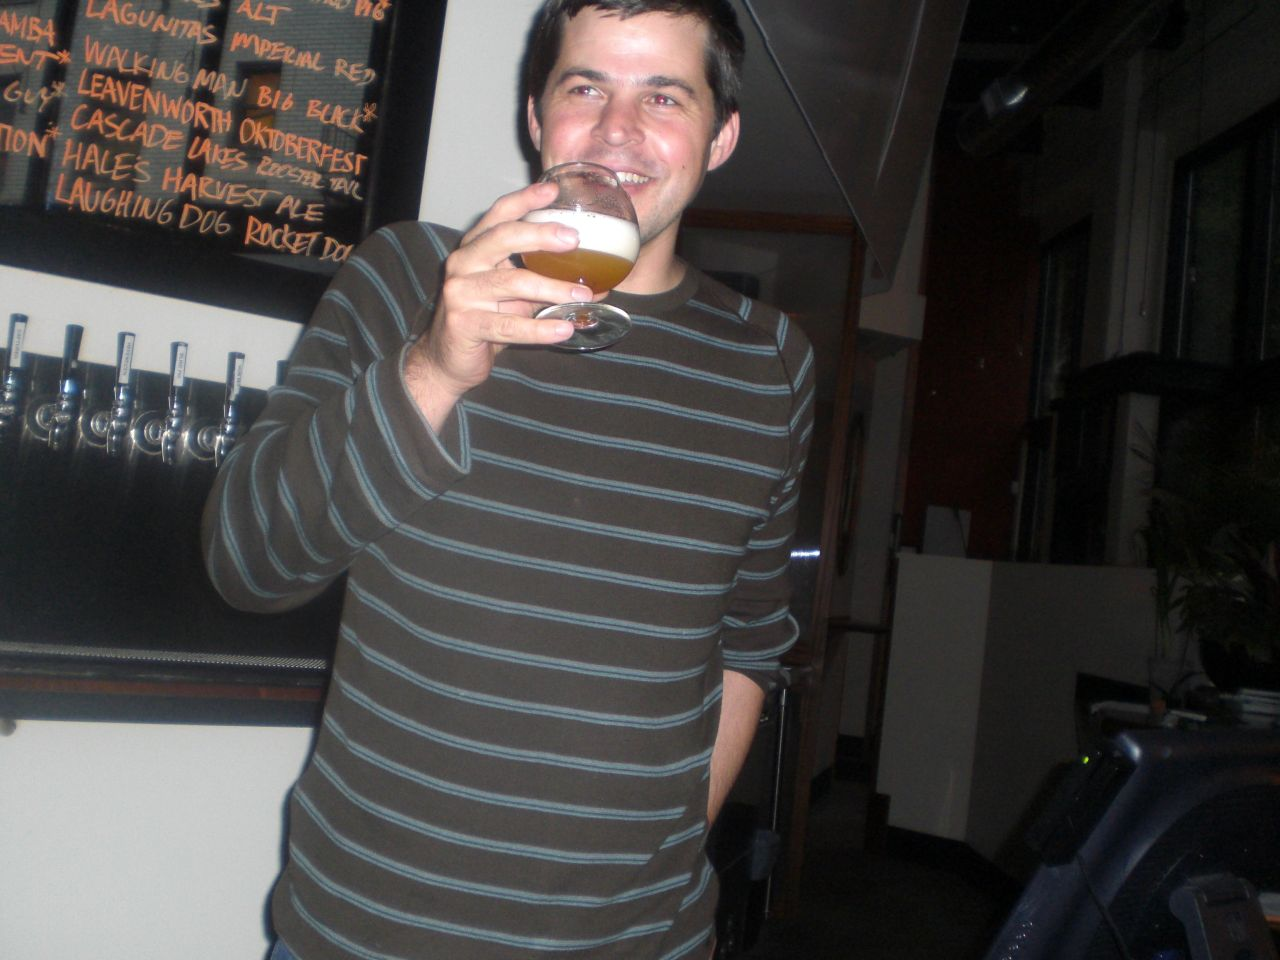 Geoff Phillips drinking a beer after closing time at Bailey's Taproom in September 2008. (photo by Angelo De Ieso)